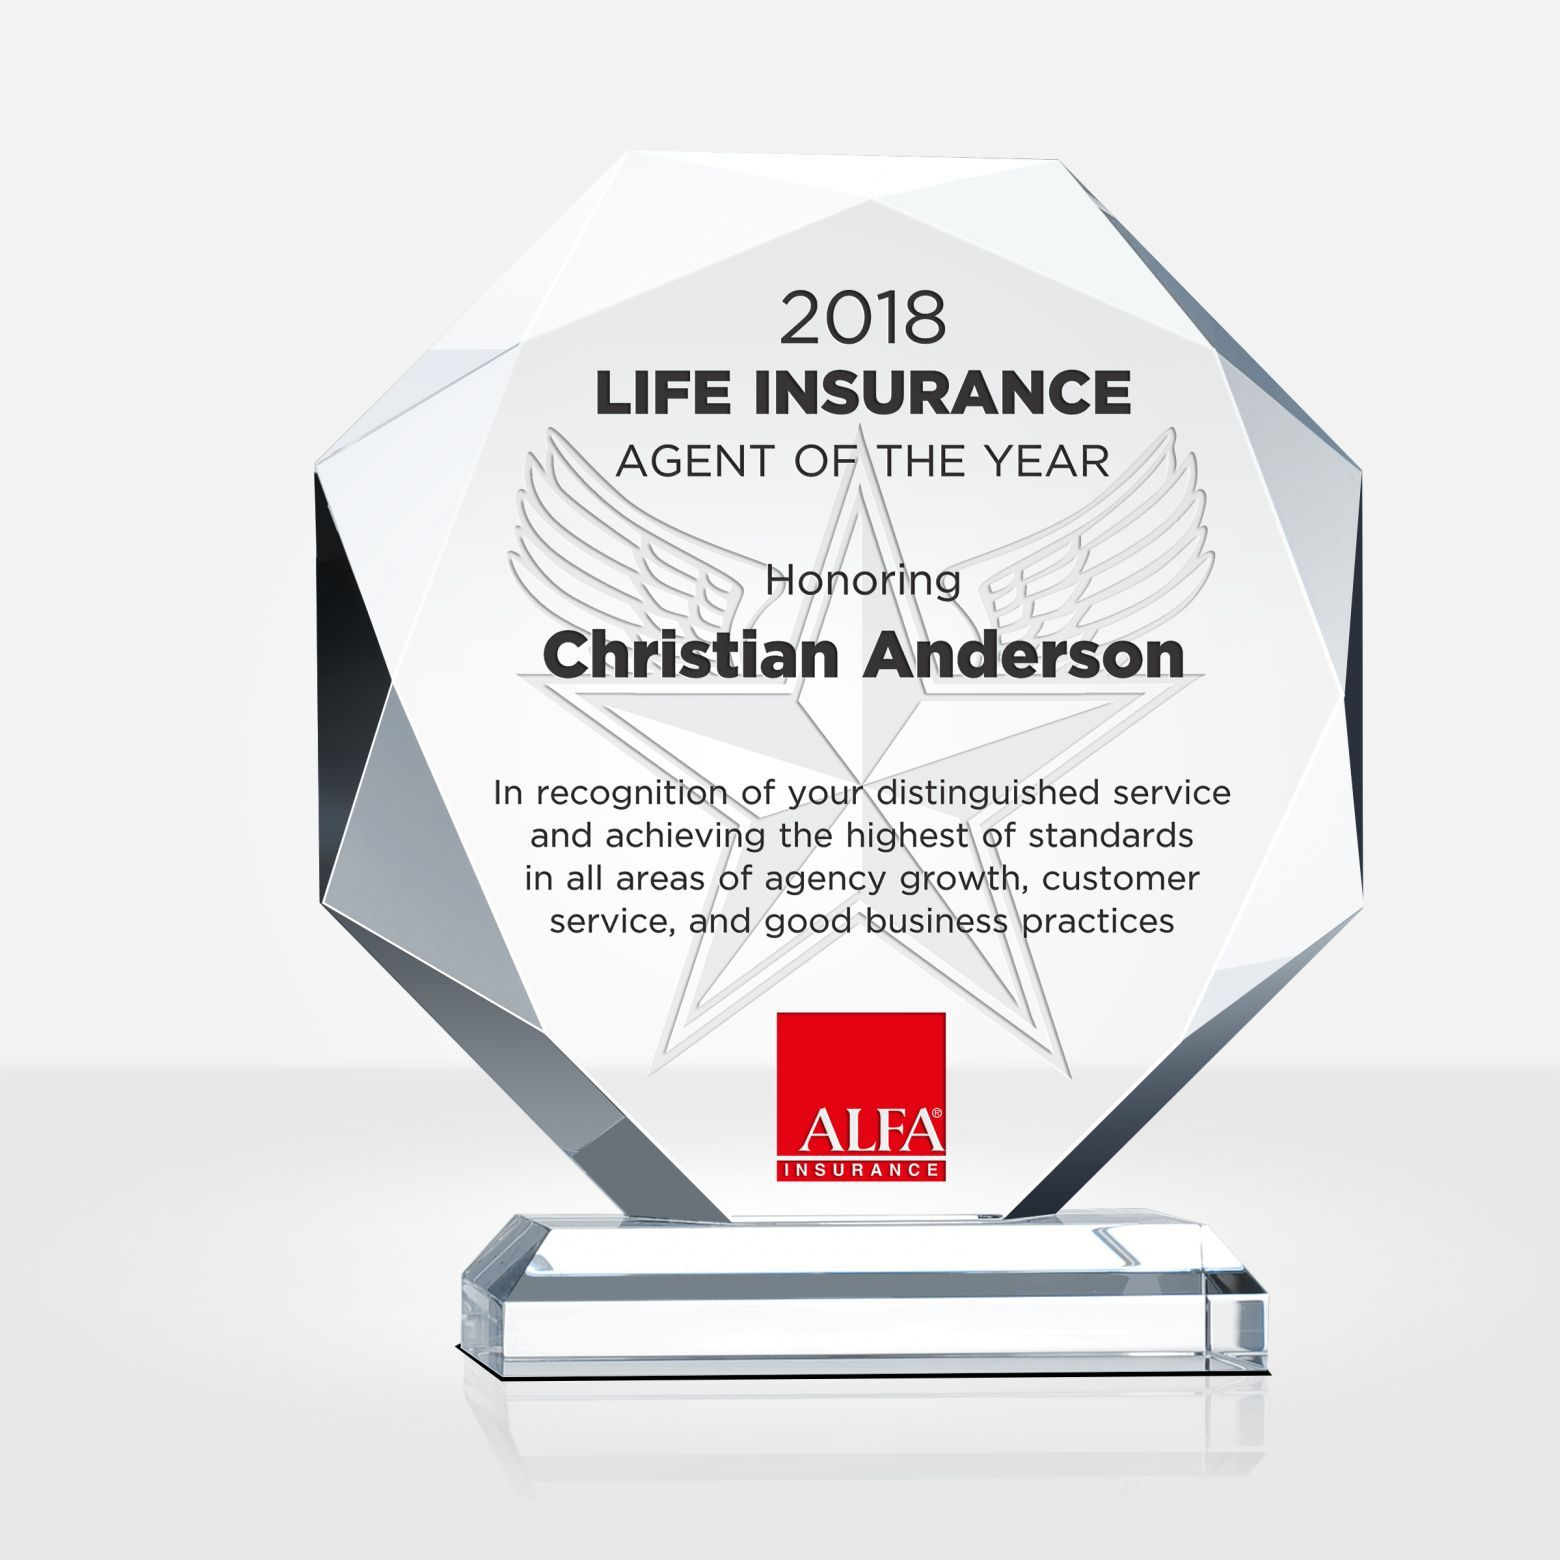 Insurance Agent Of The Year Award Is A Prestigious Award To Recognize The Leading Insurance Agents Hon Insurance Agent Life Insurance Agent Umbrella Insurance